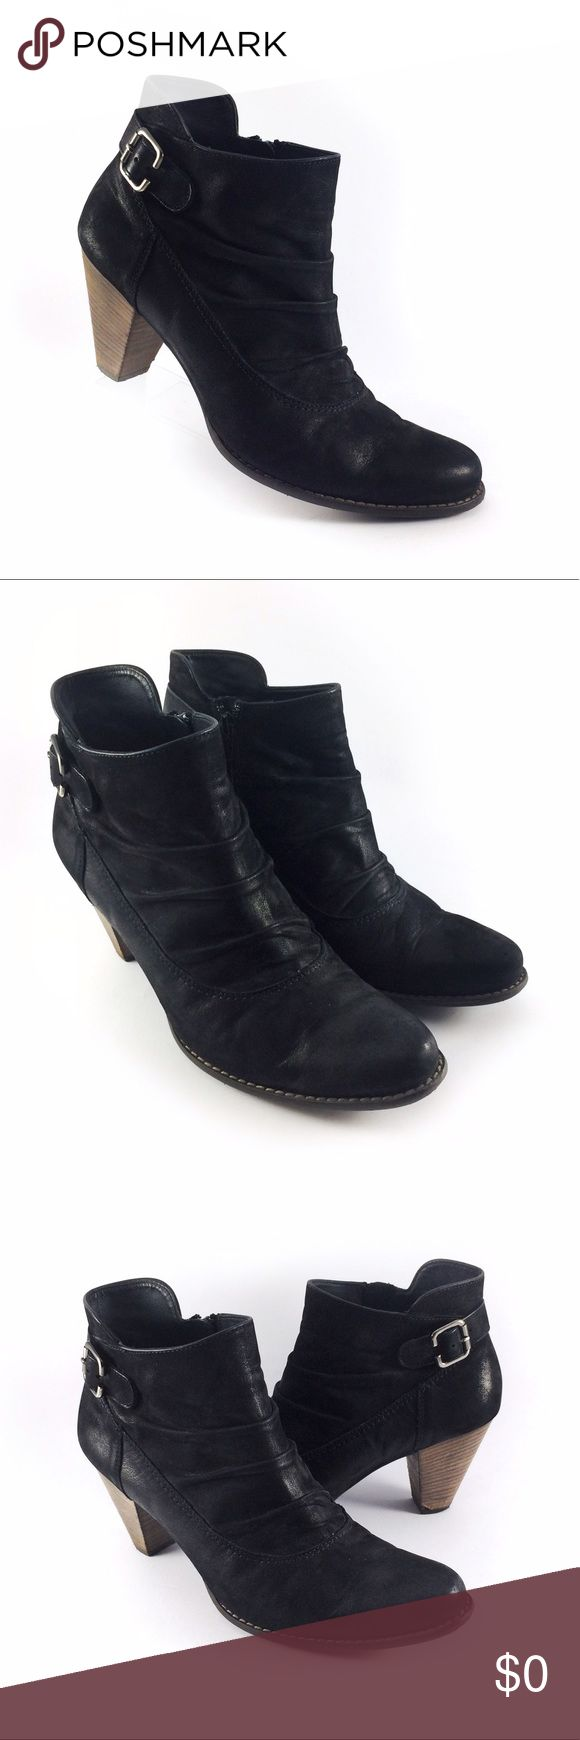 Paul Green Munchen black leather ankle boots. Womens Paul Green Munchen black leather (waxed Suede) side zip tapered ankle boots. Boots feature a layered look and have a stacked wood heel. This item is in great condition and comes from a smoke free home. Paul Green Shoes Ankle Boots & Booties